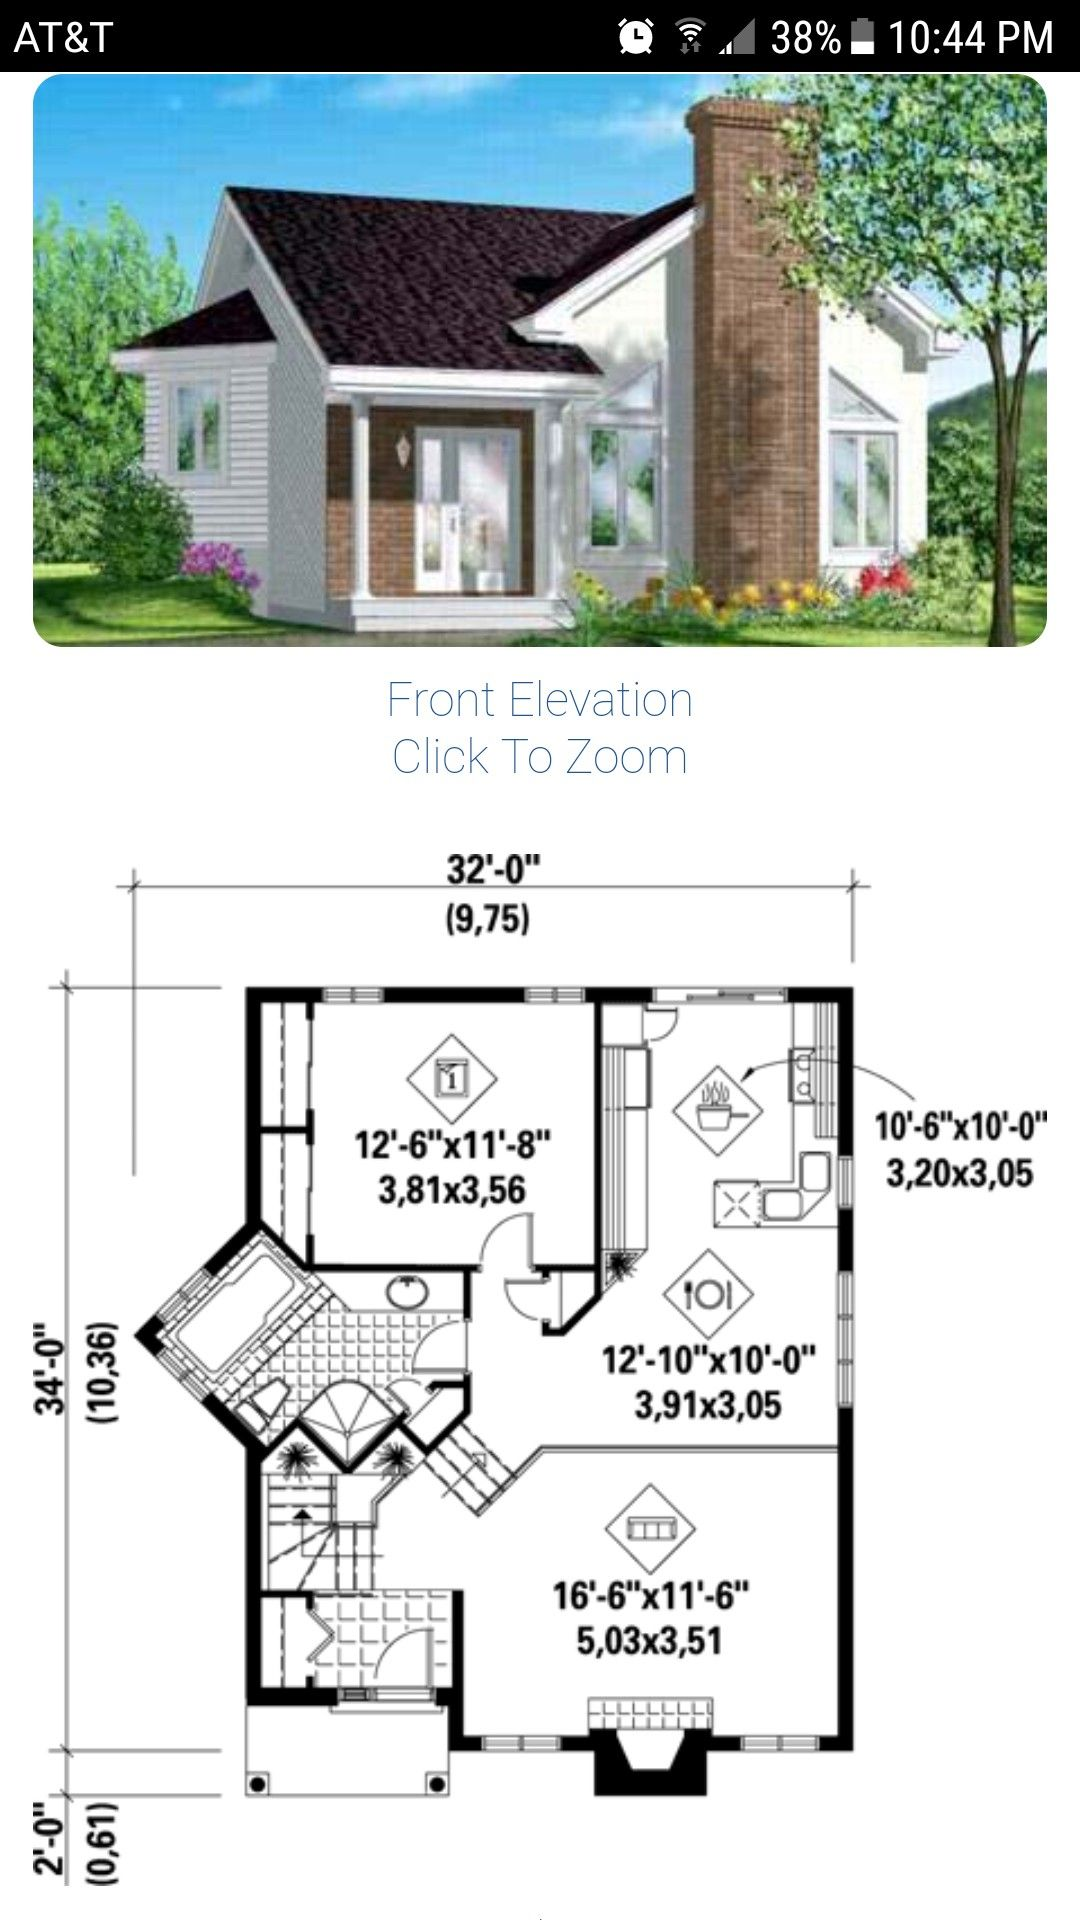 Pin By Leah Hendrick On House Inspiration Build Your Own House Cottage House Plans Small House Plans